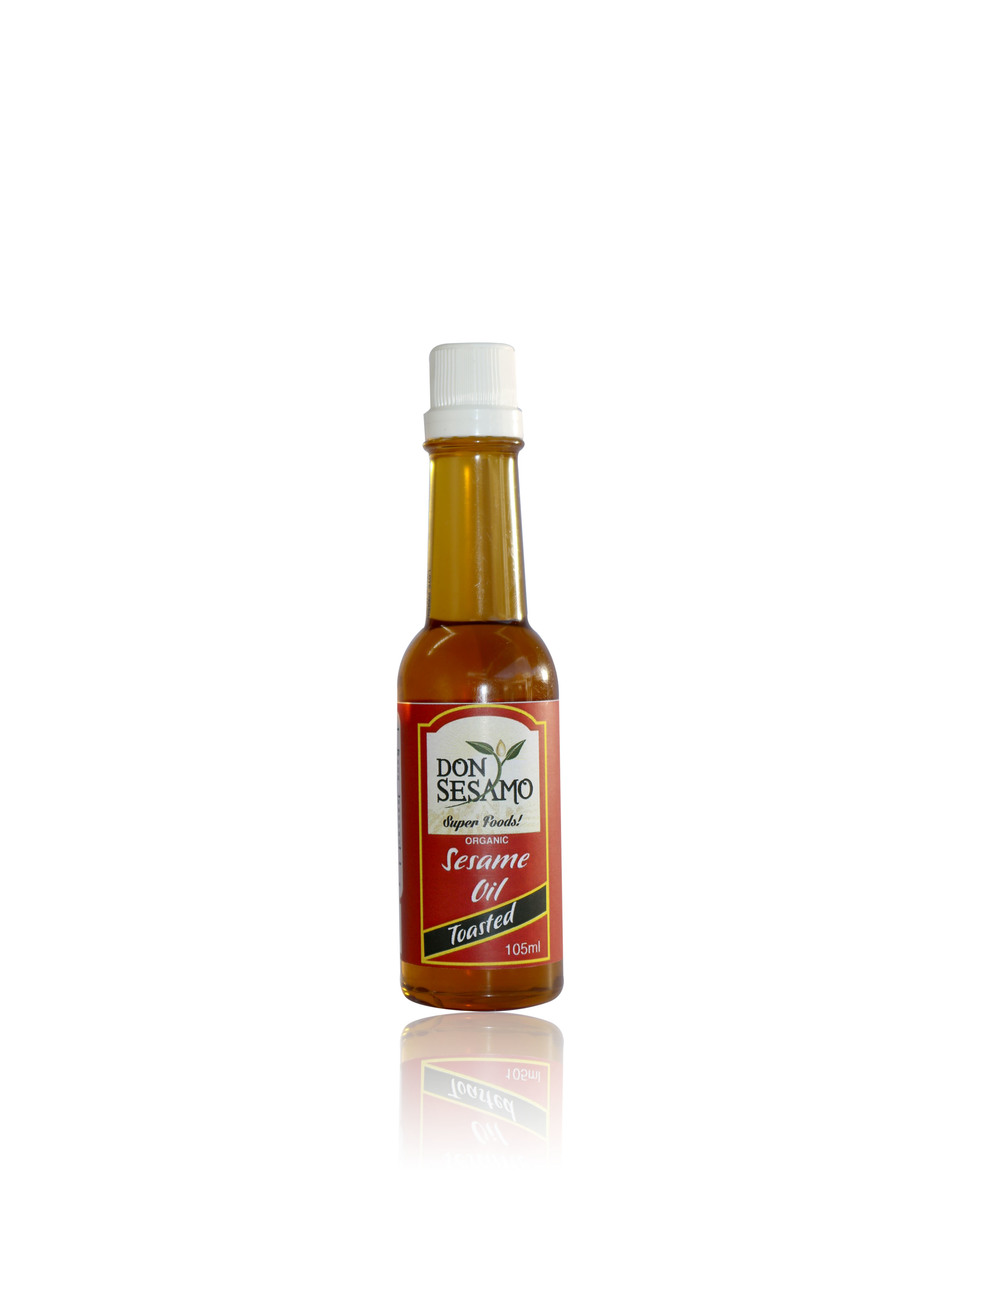 TOASTED SESAME OIL 105 ML(3.55 fl. OZ.)